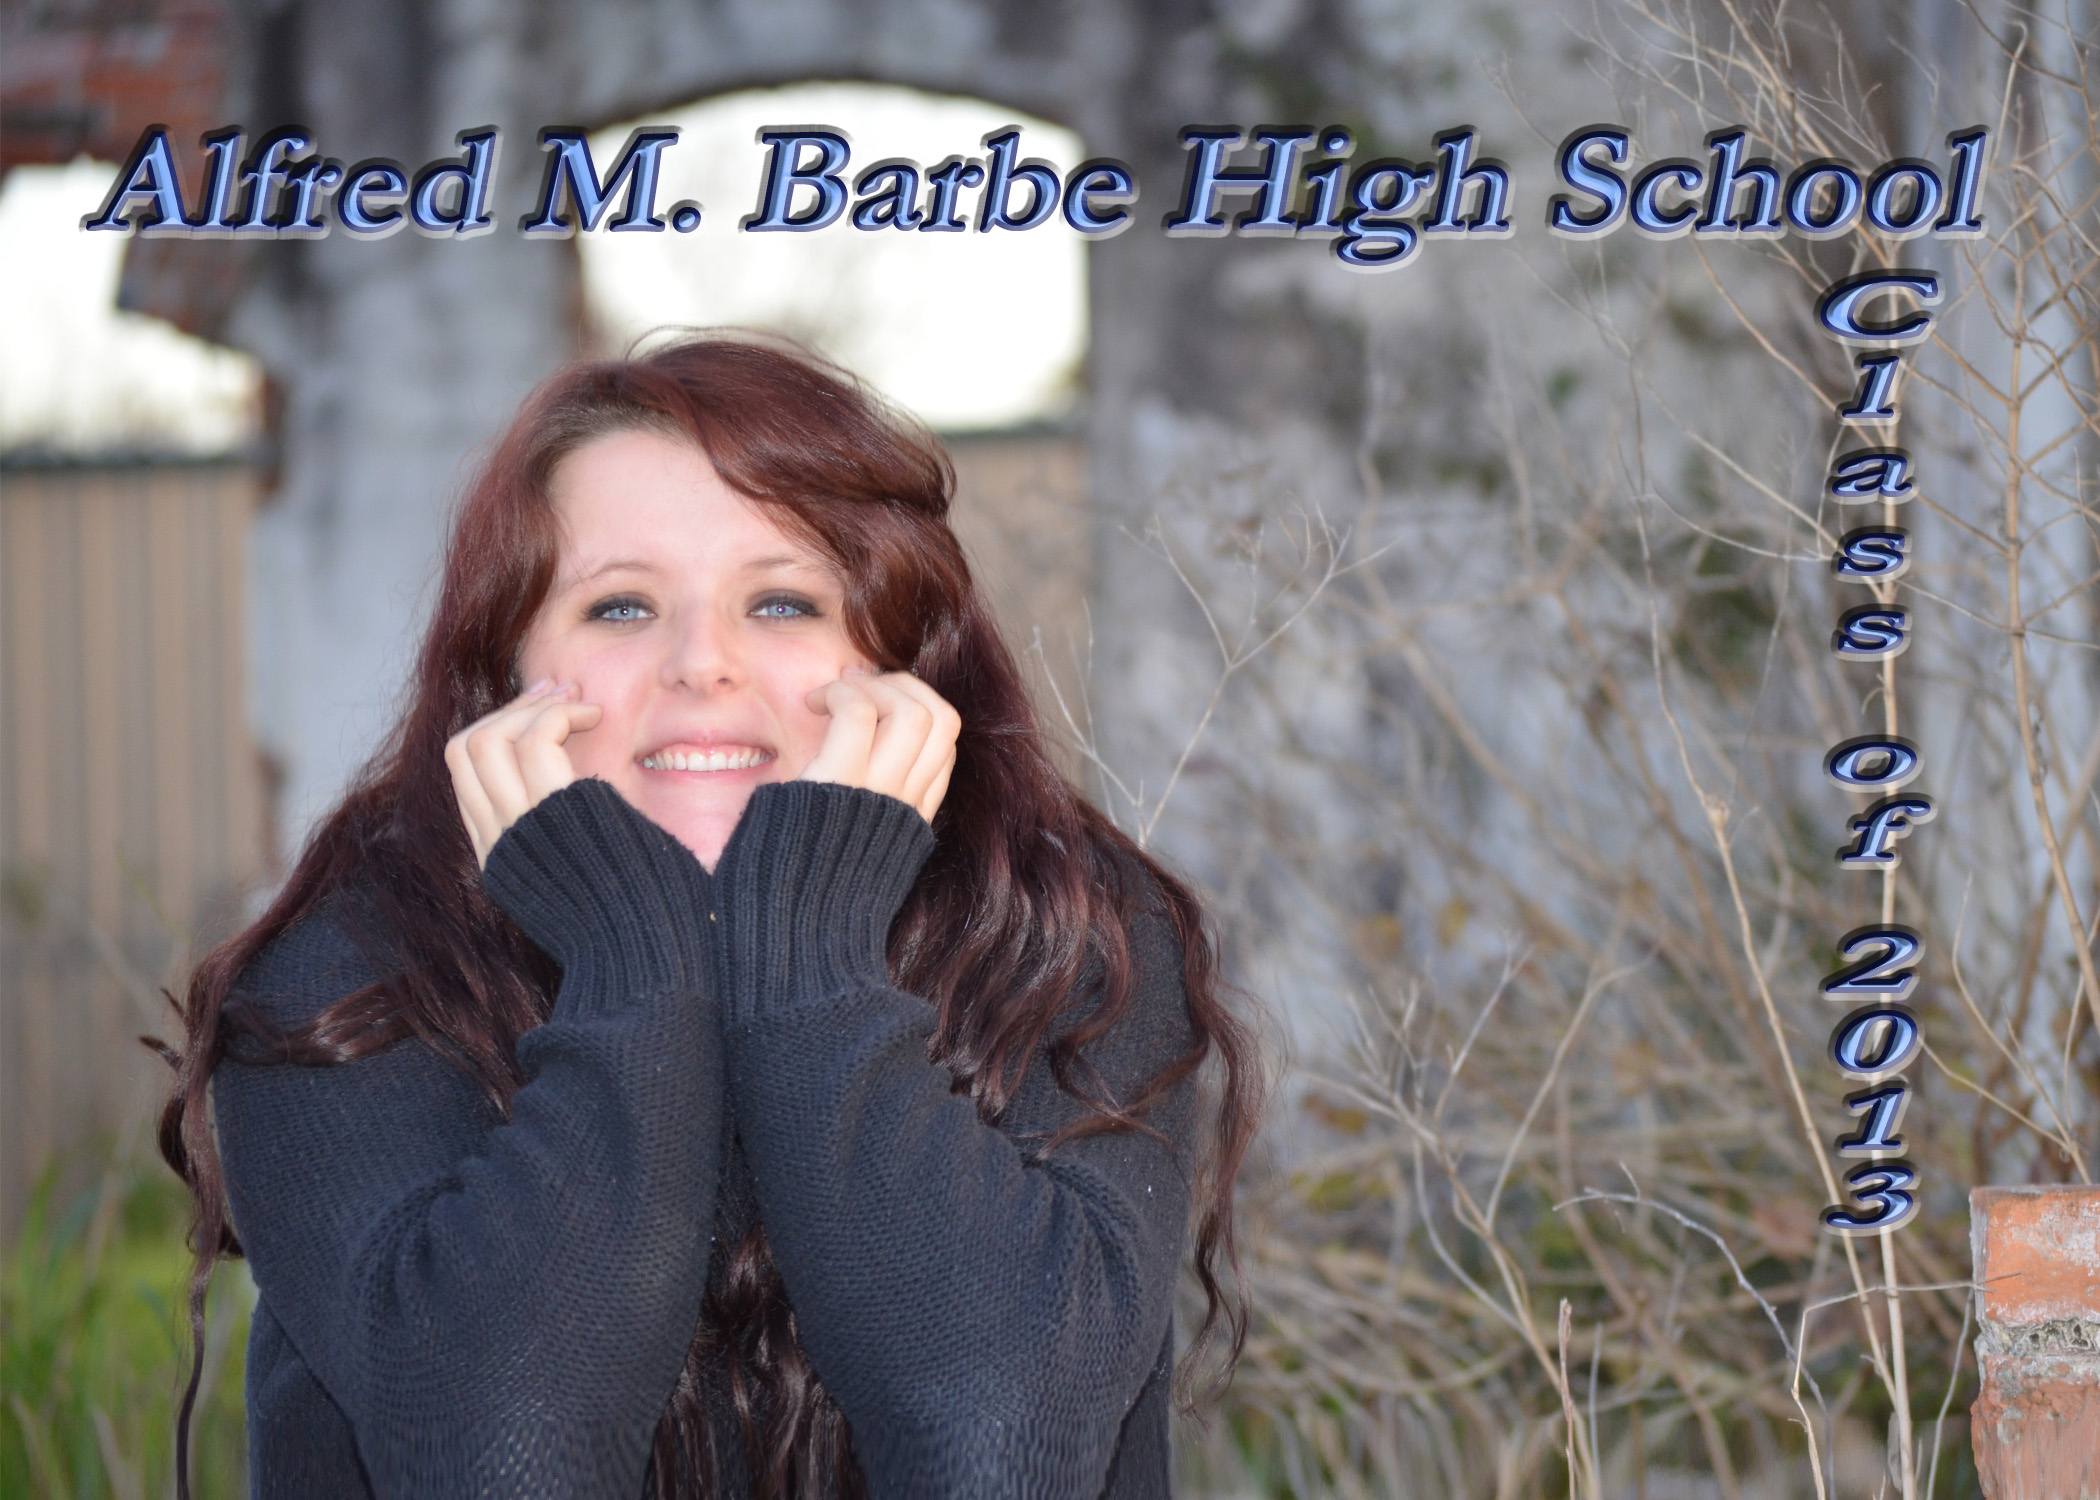 High School Senior Graduation Card -Post Card H FrontCover113.jpg